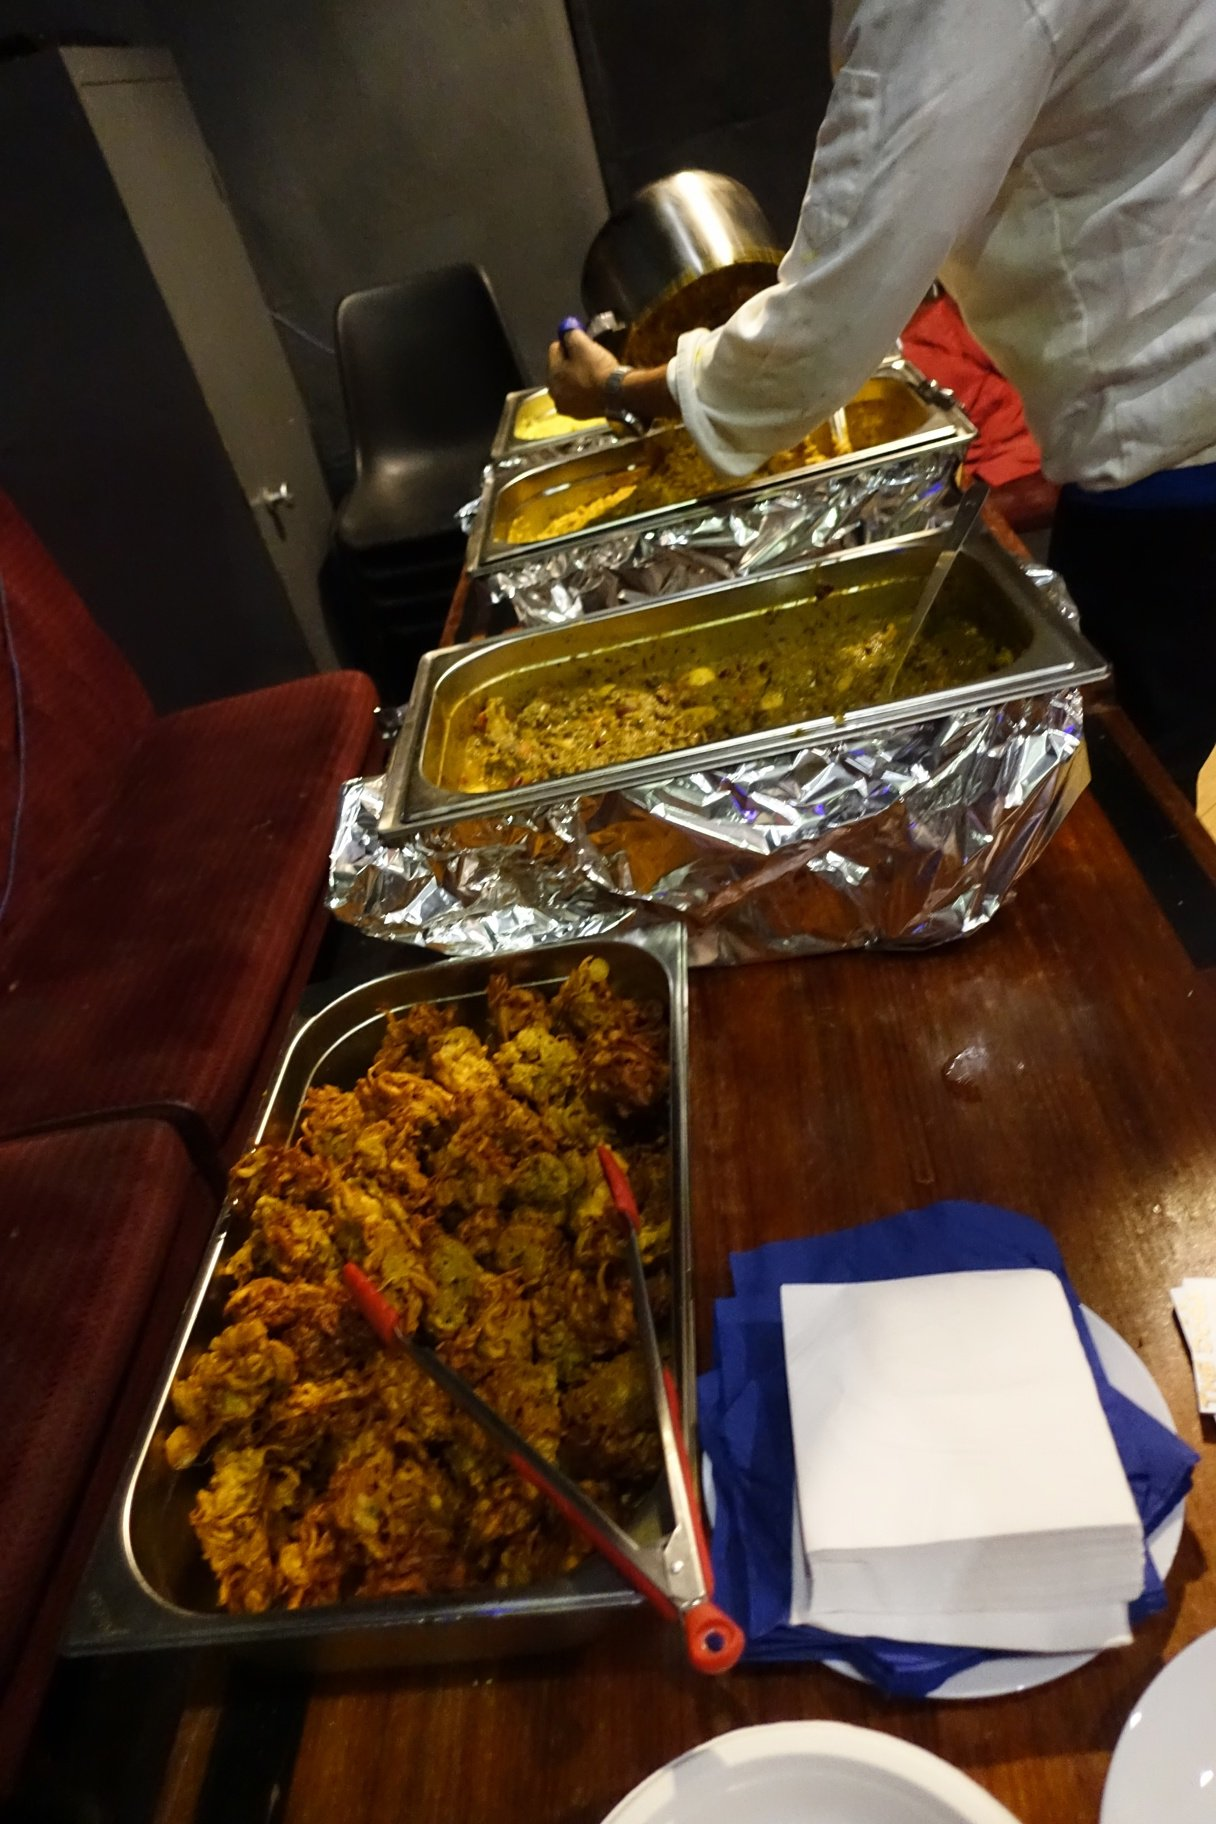 Curry served at the event